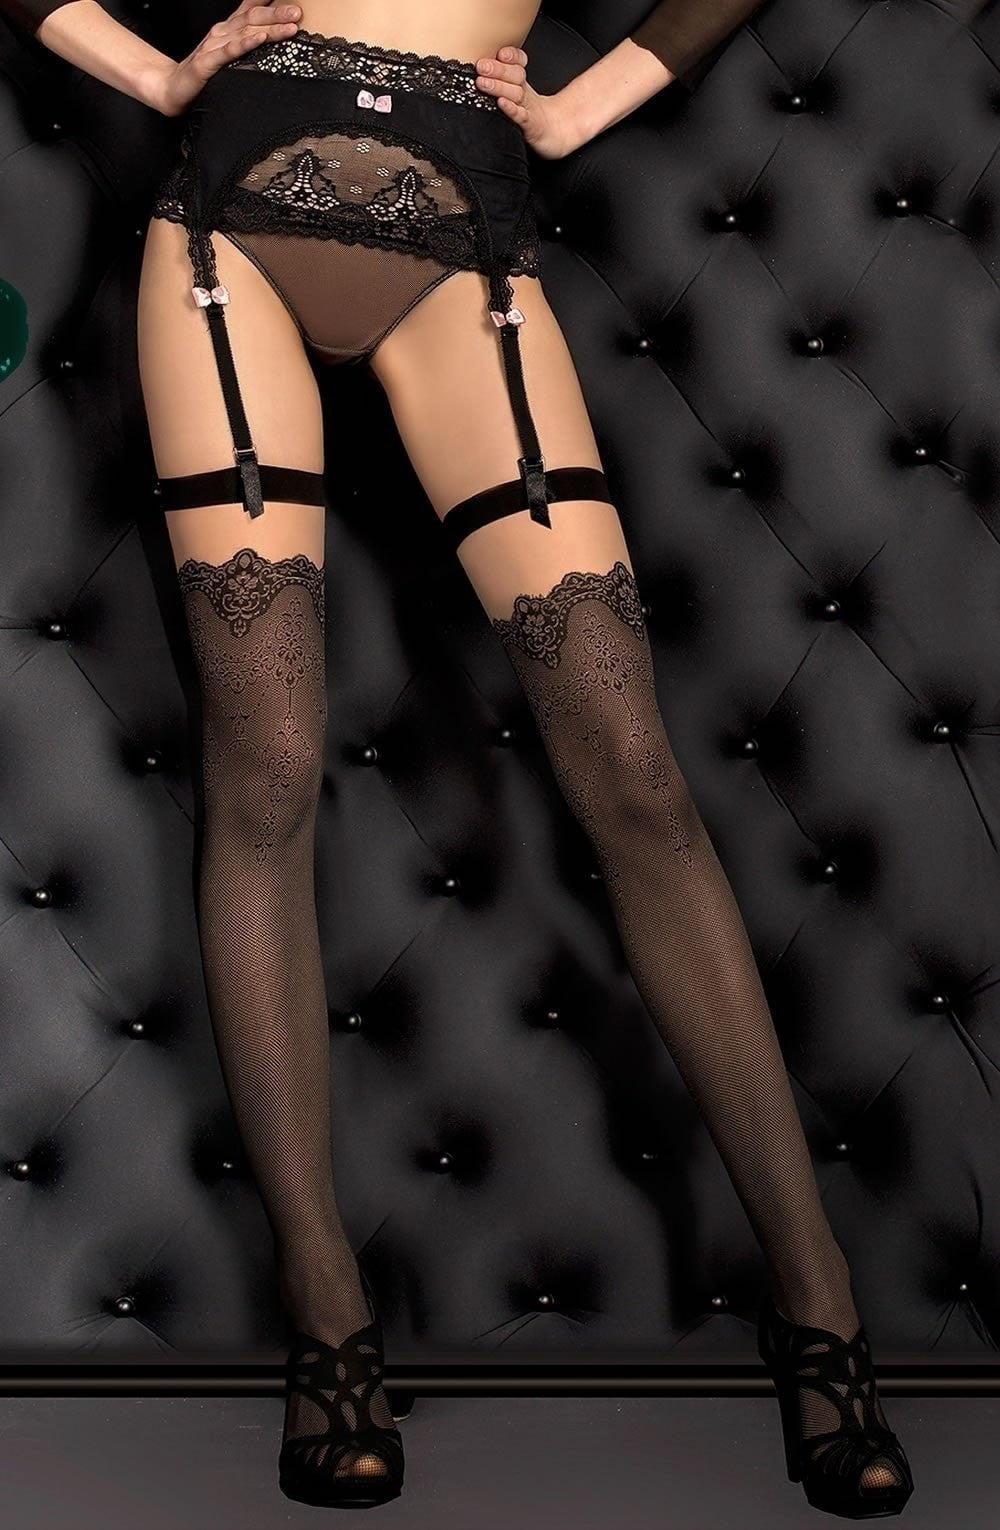 Ballerina Stockings 388 (Skin) - Stockings - Ballerina - Charm and Lace Boutique